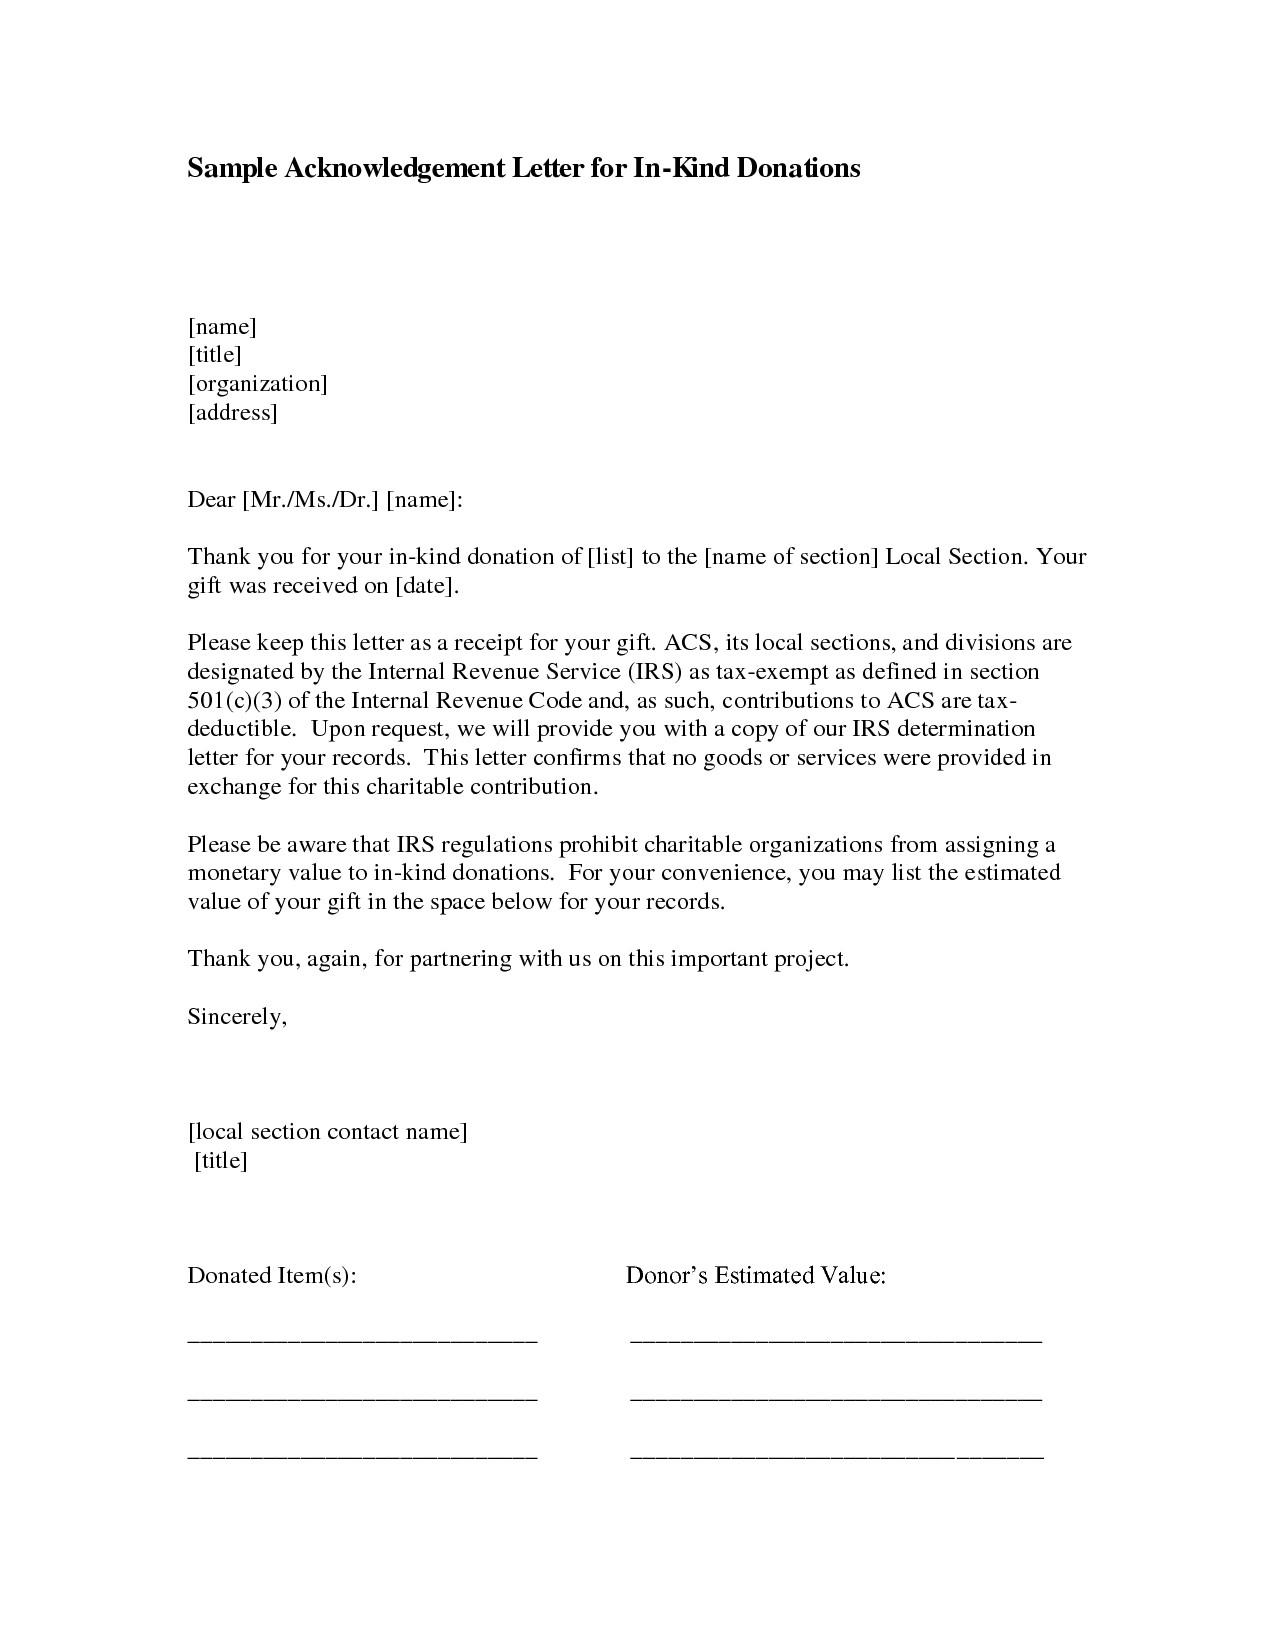 Acknowledgement Of Donation Letter Template